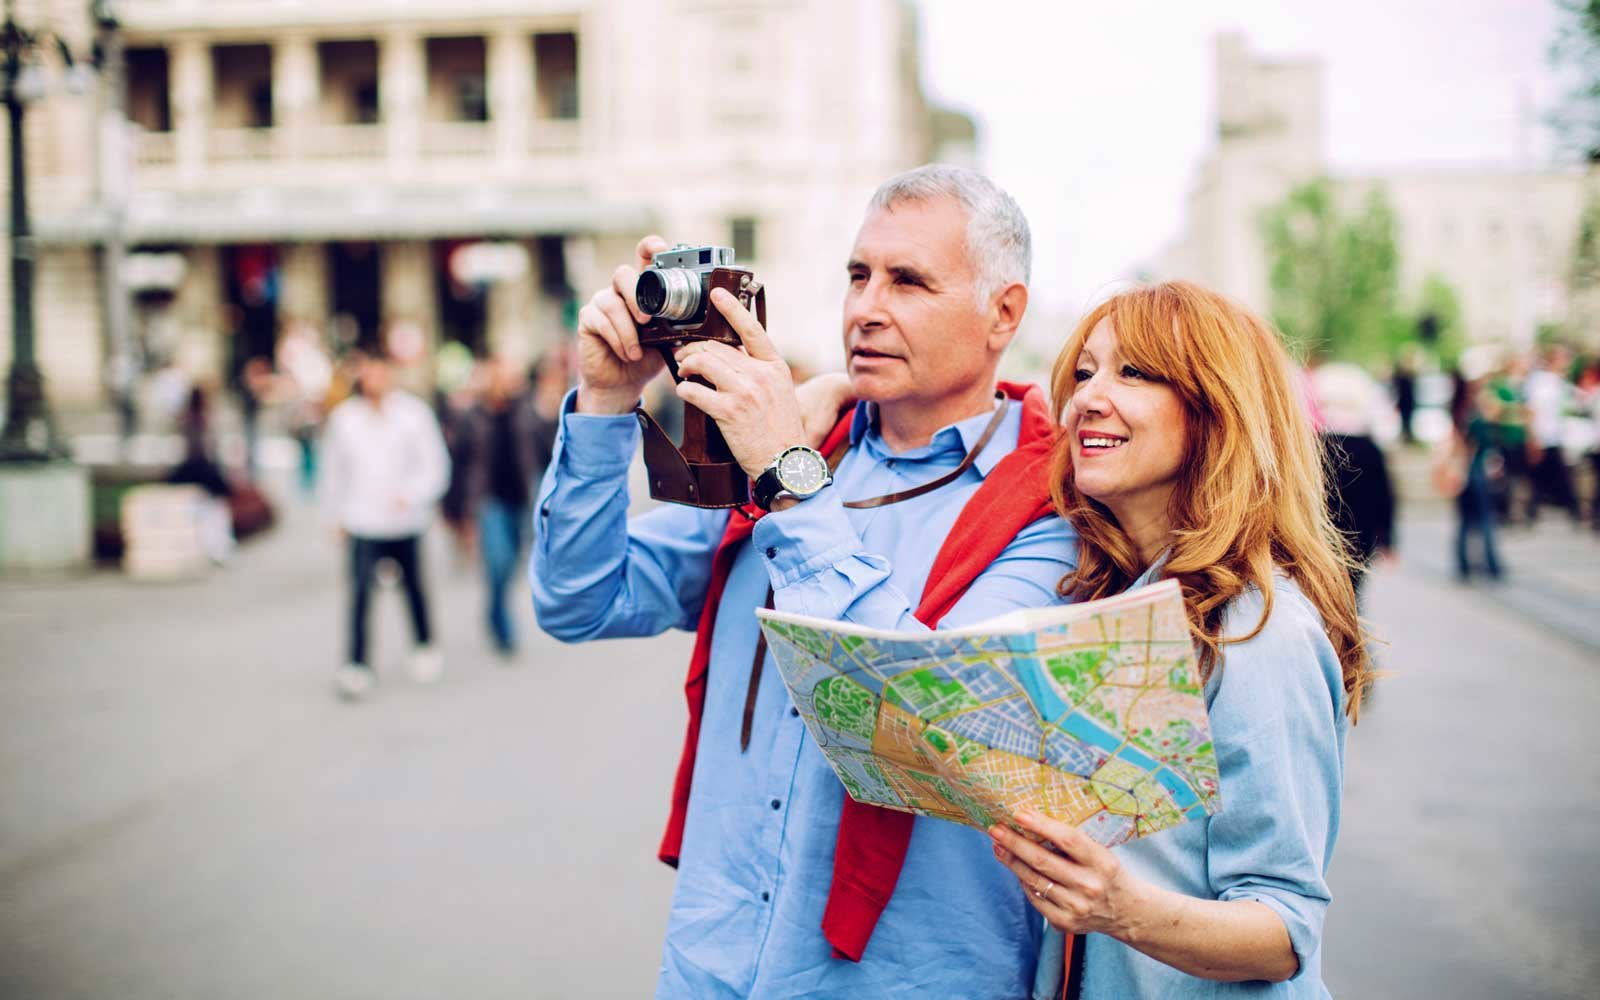 Tourists in Europe